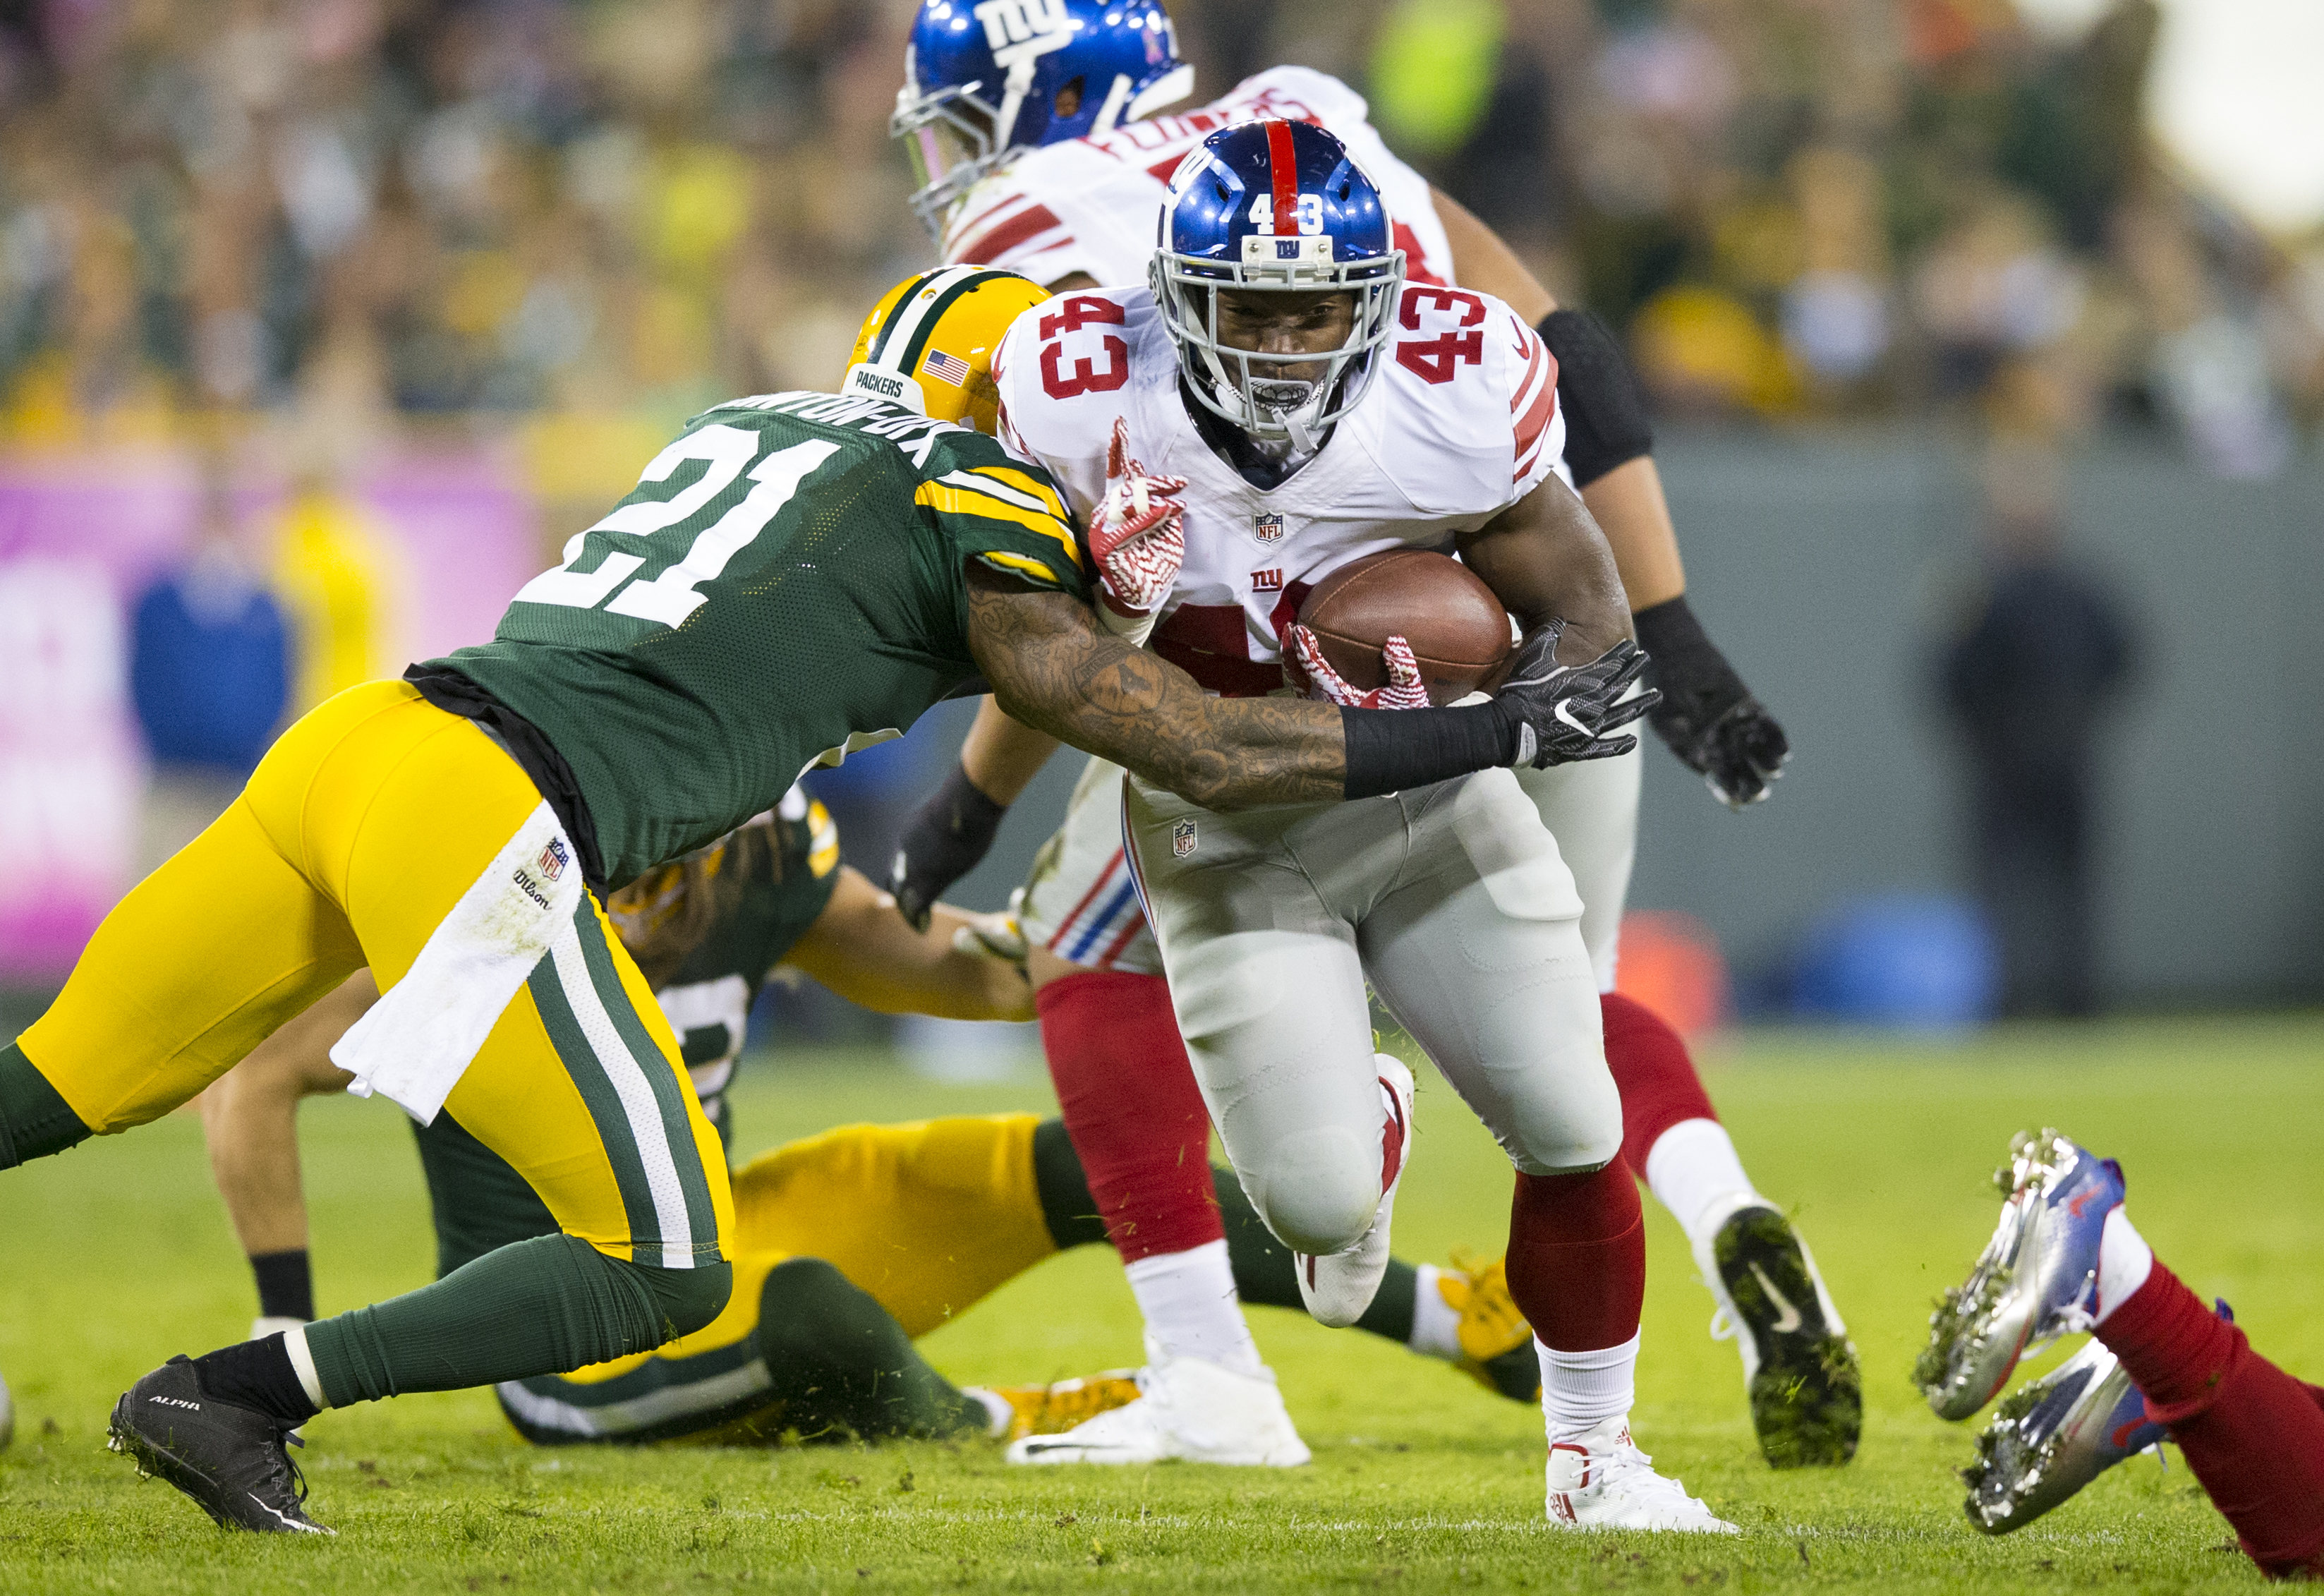 9599651-nfl-new-york-giants-at-green-bay-packers